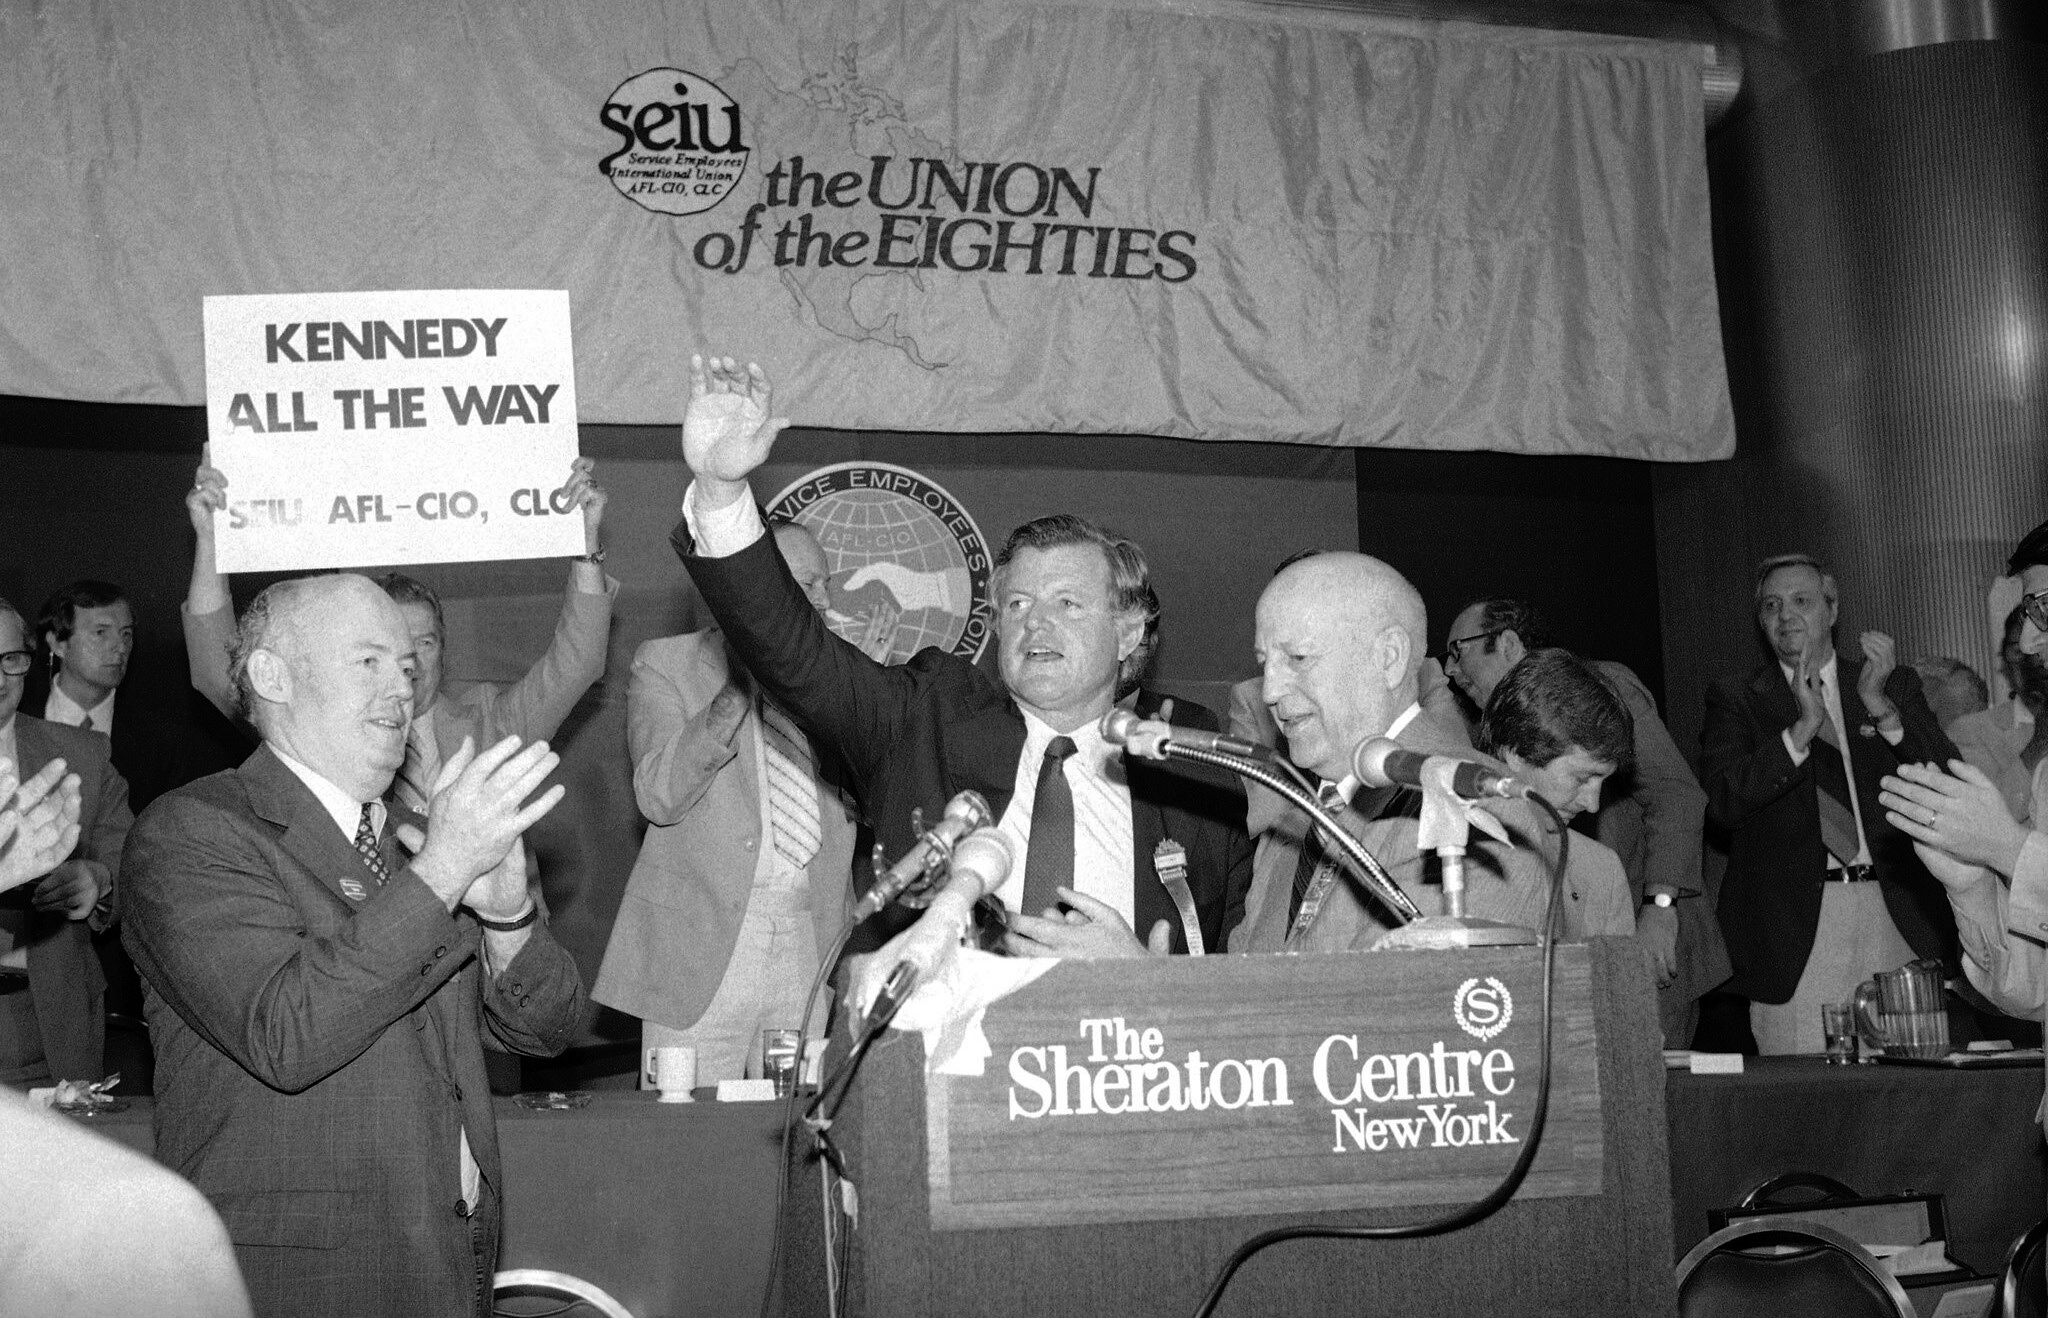 John Sweeney, left, was the incoming president of the Service Employees International Union in June 1980 when Senator Edward M. Kennedy (waving) spoke to its convention in New York. Mr. Kennedy was seeking the Democratic presidential nomination. At right in the foreground was the outgoing union president, George Hardy. Credit: Associated Press